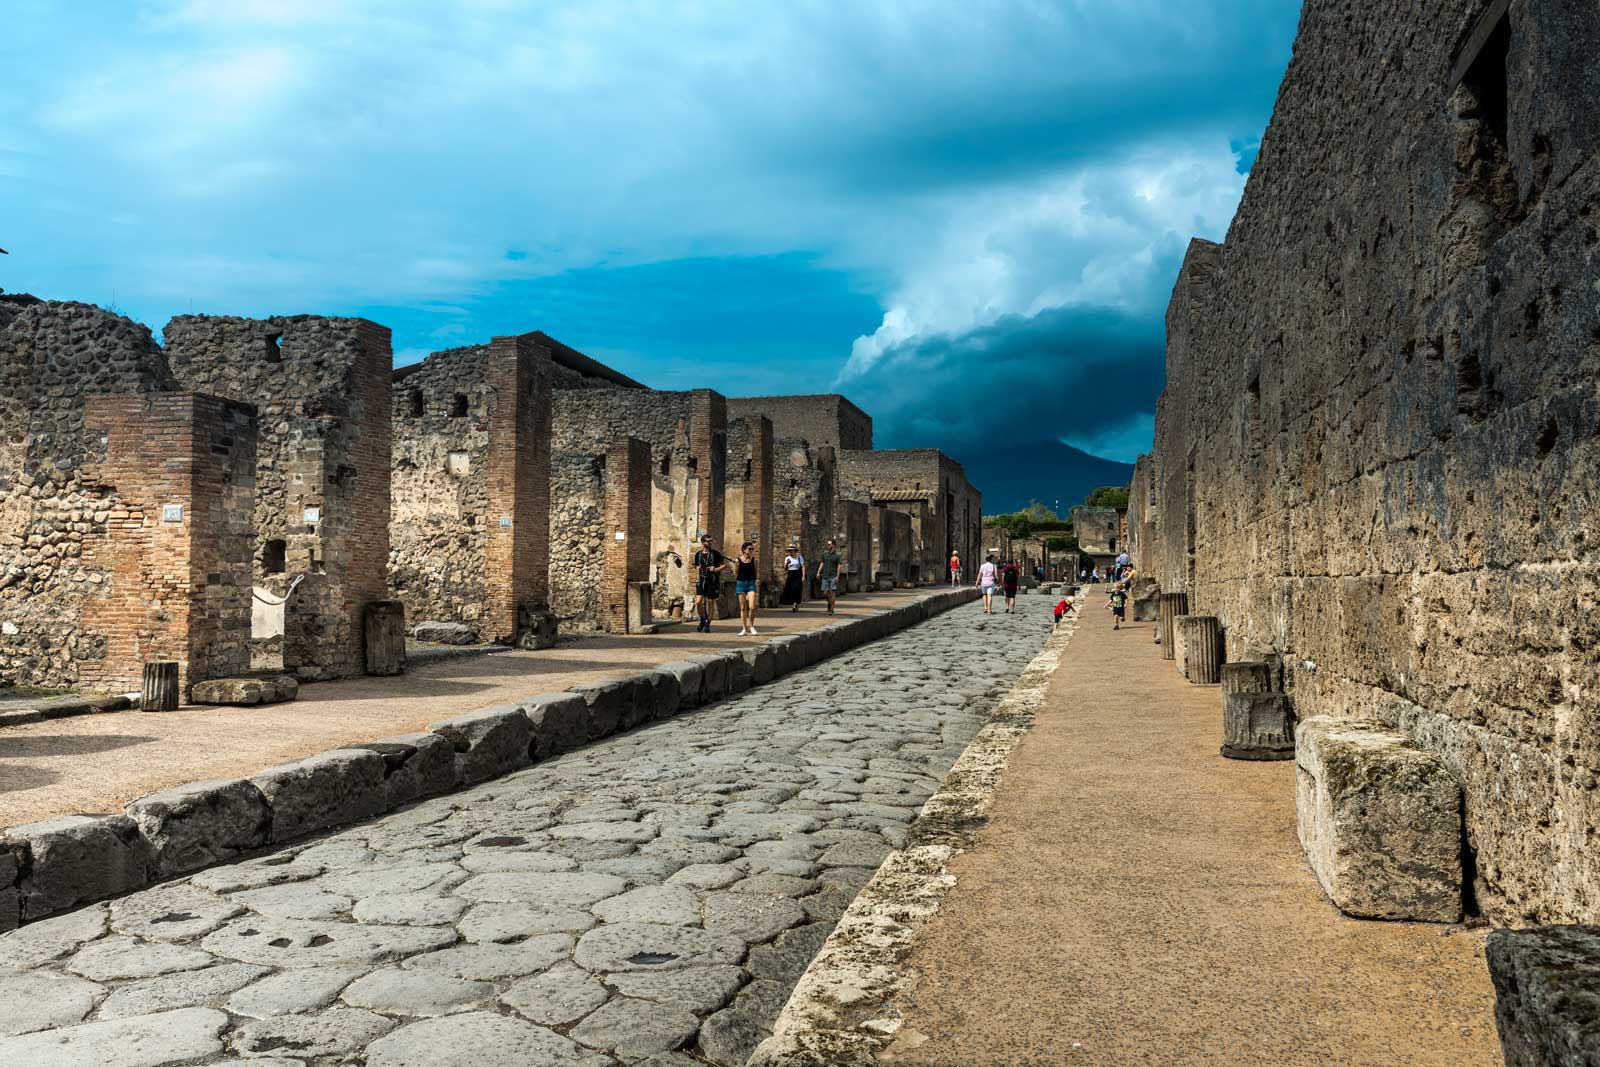 Day trip from Rome and guided tour of Pompeii